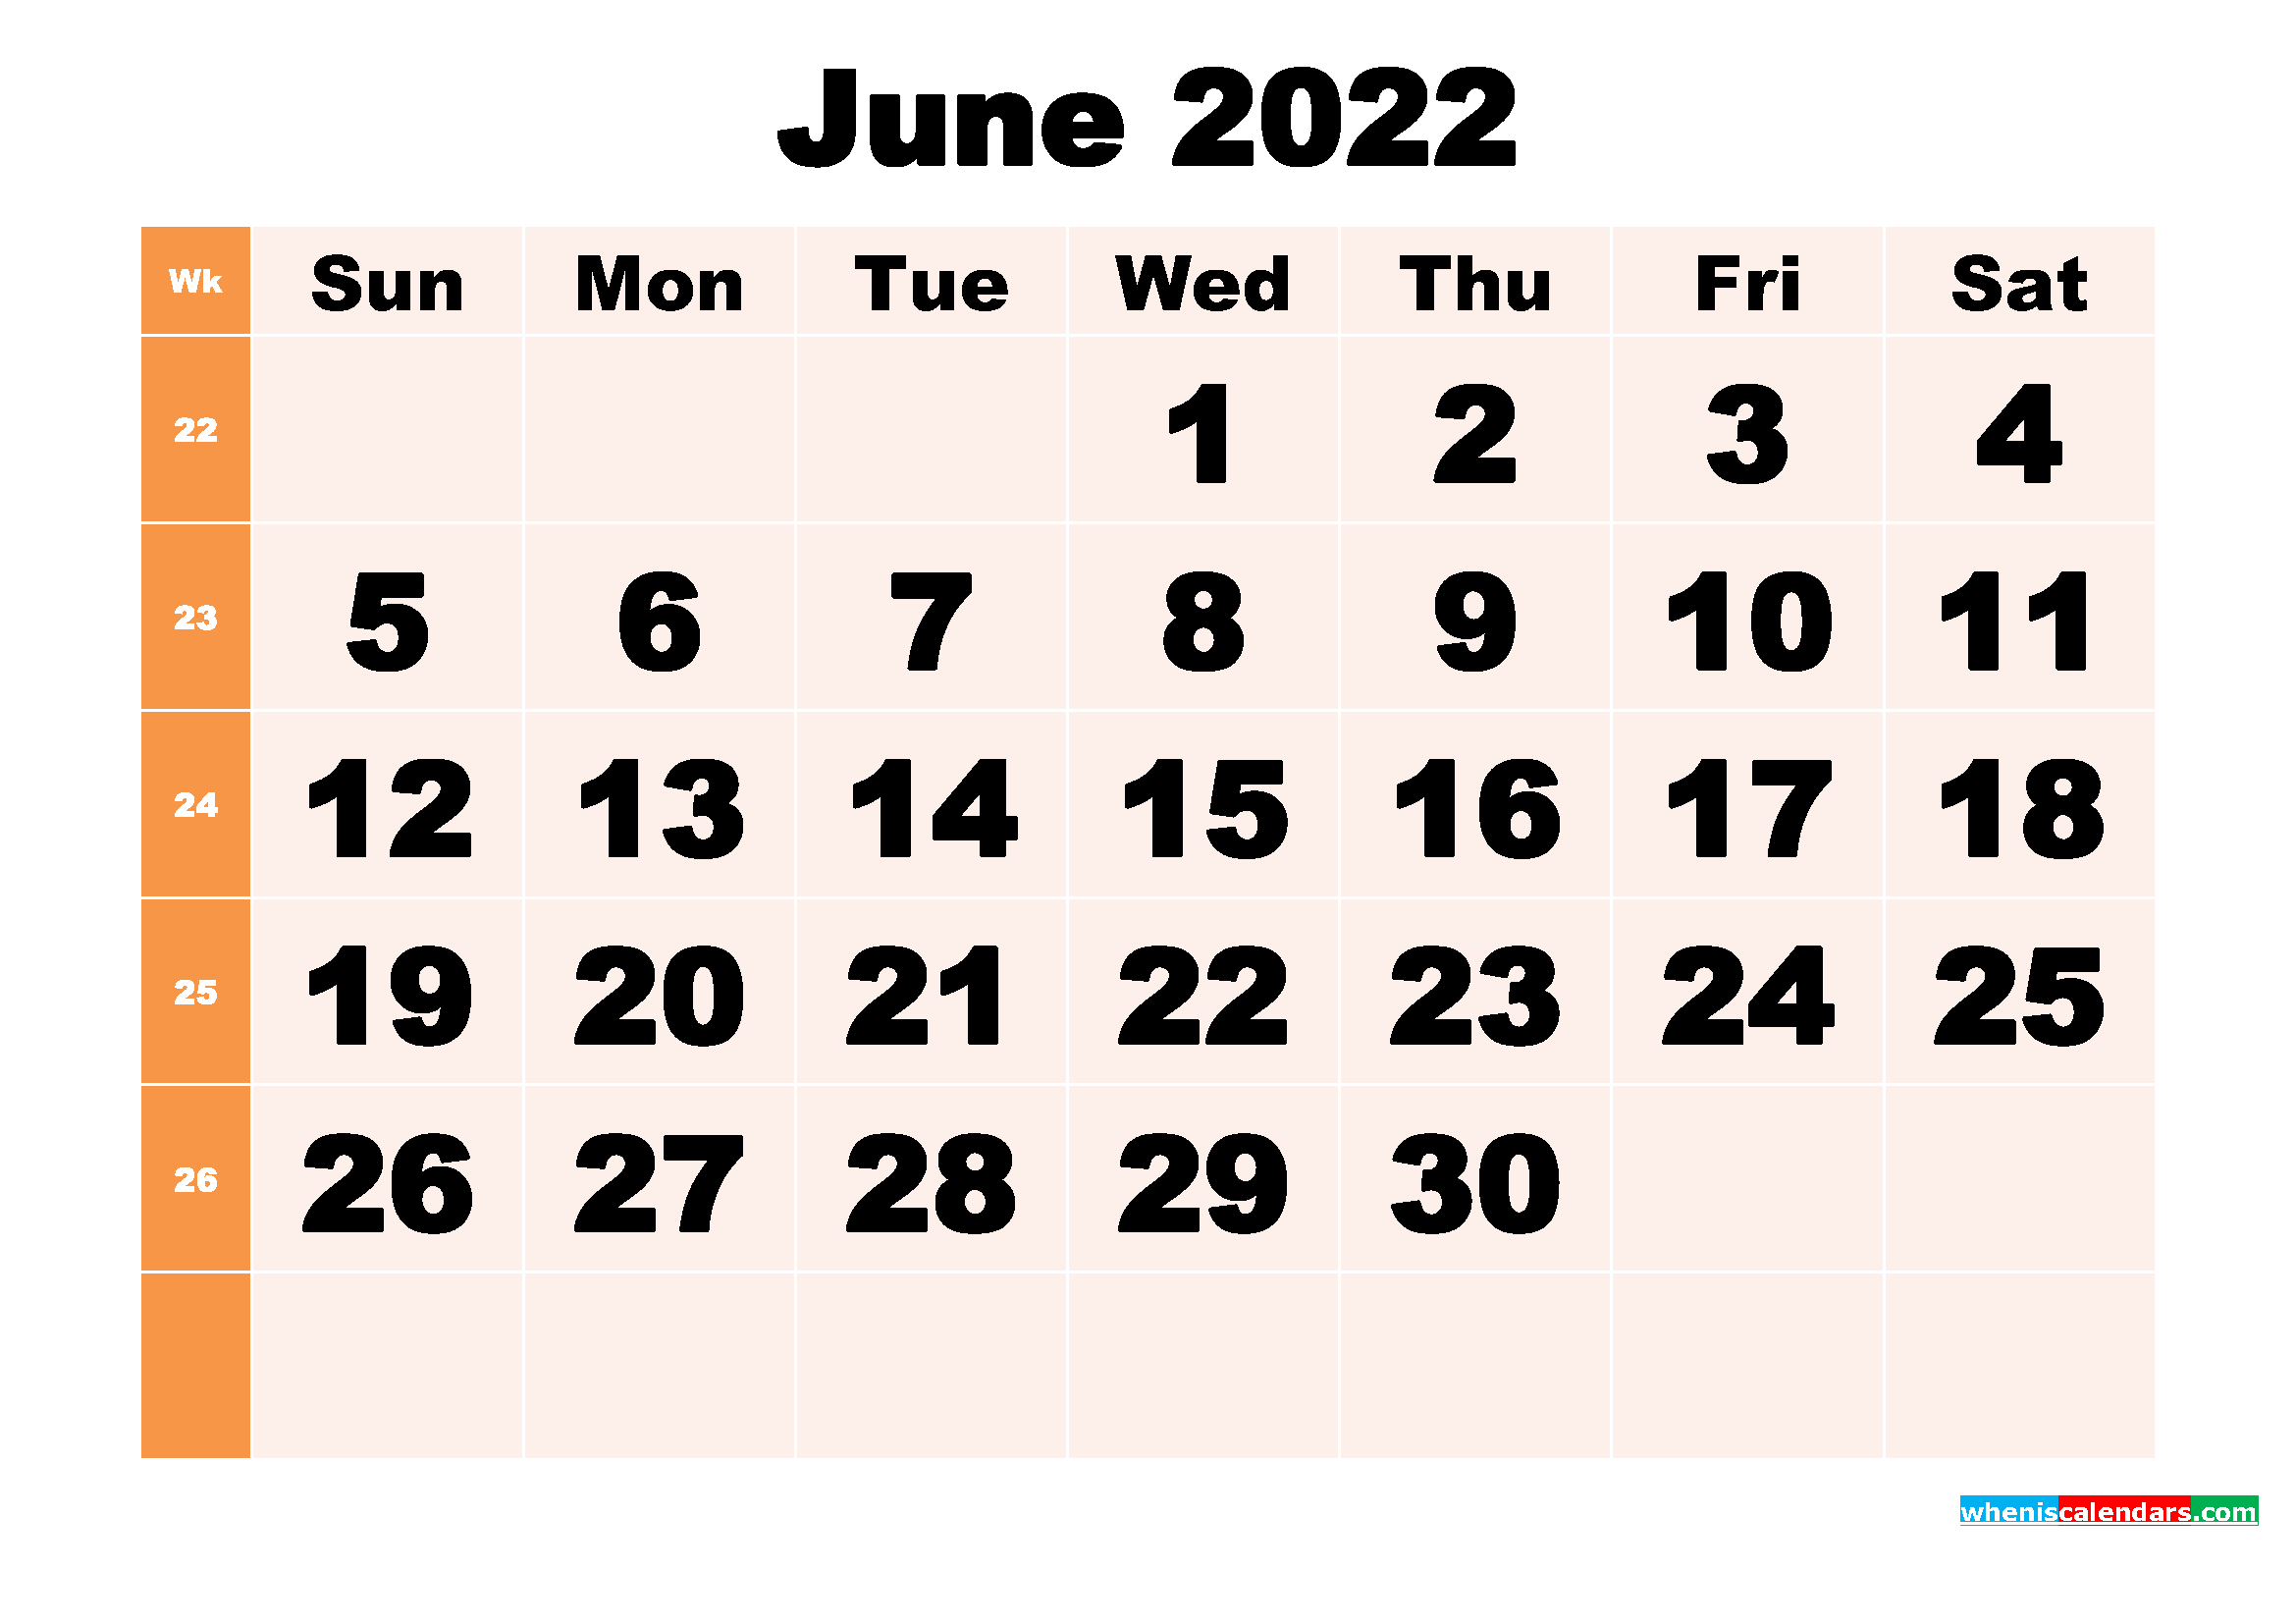 Print the calendar and mark the important dates, events, holidays, etc. Free Printable June 2022 Calendar Template Word, PDF